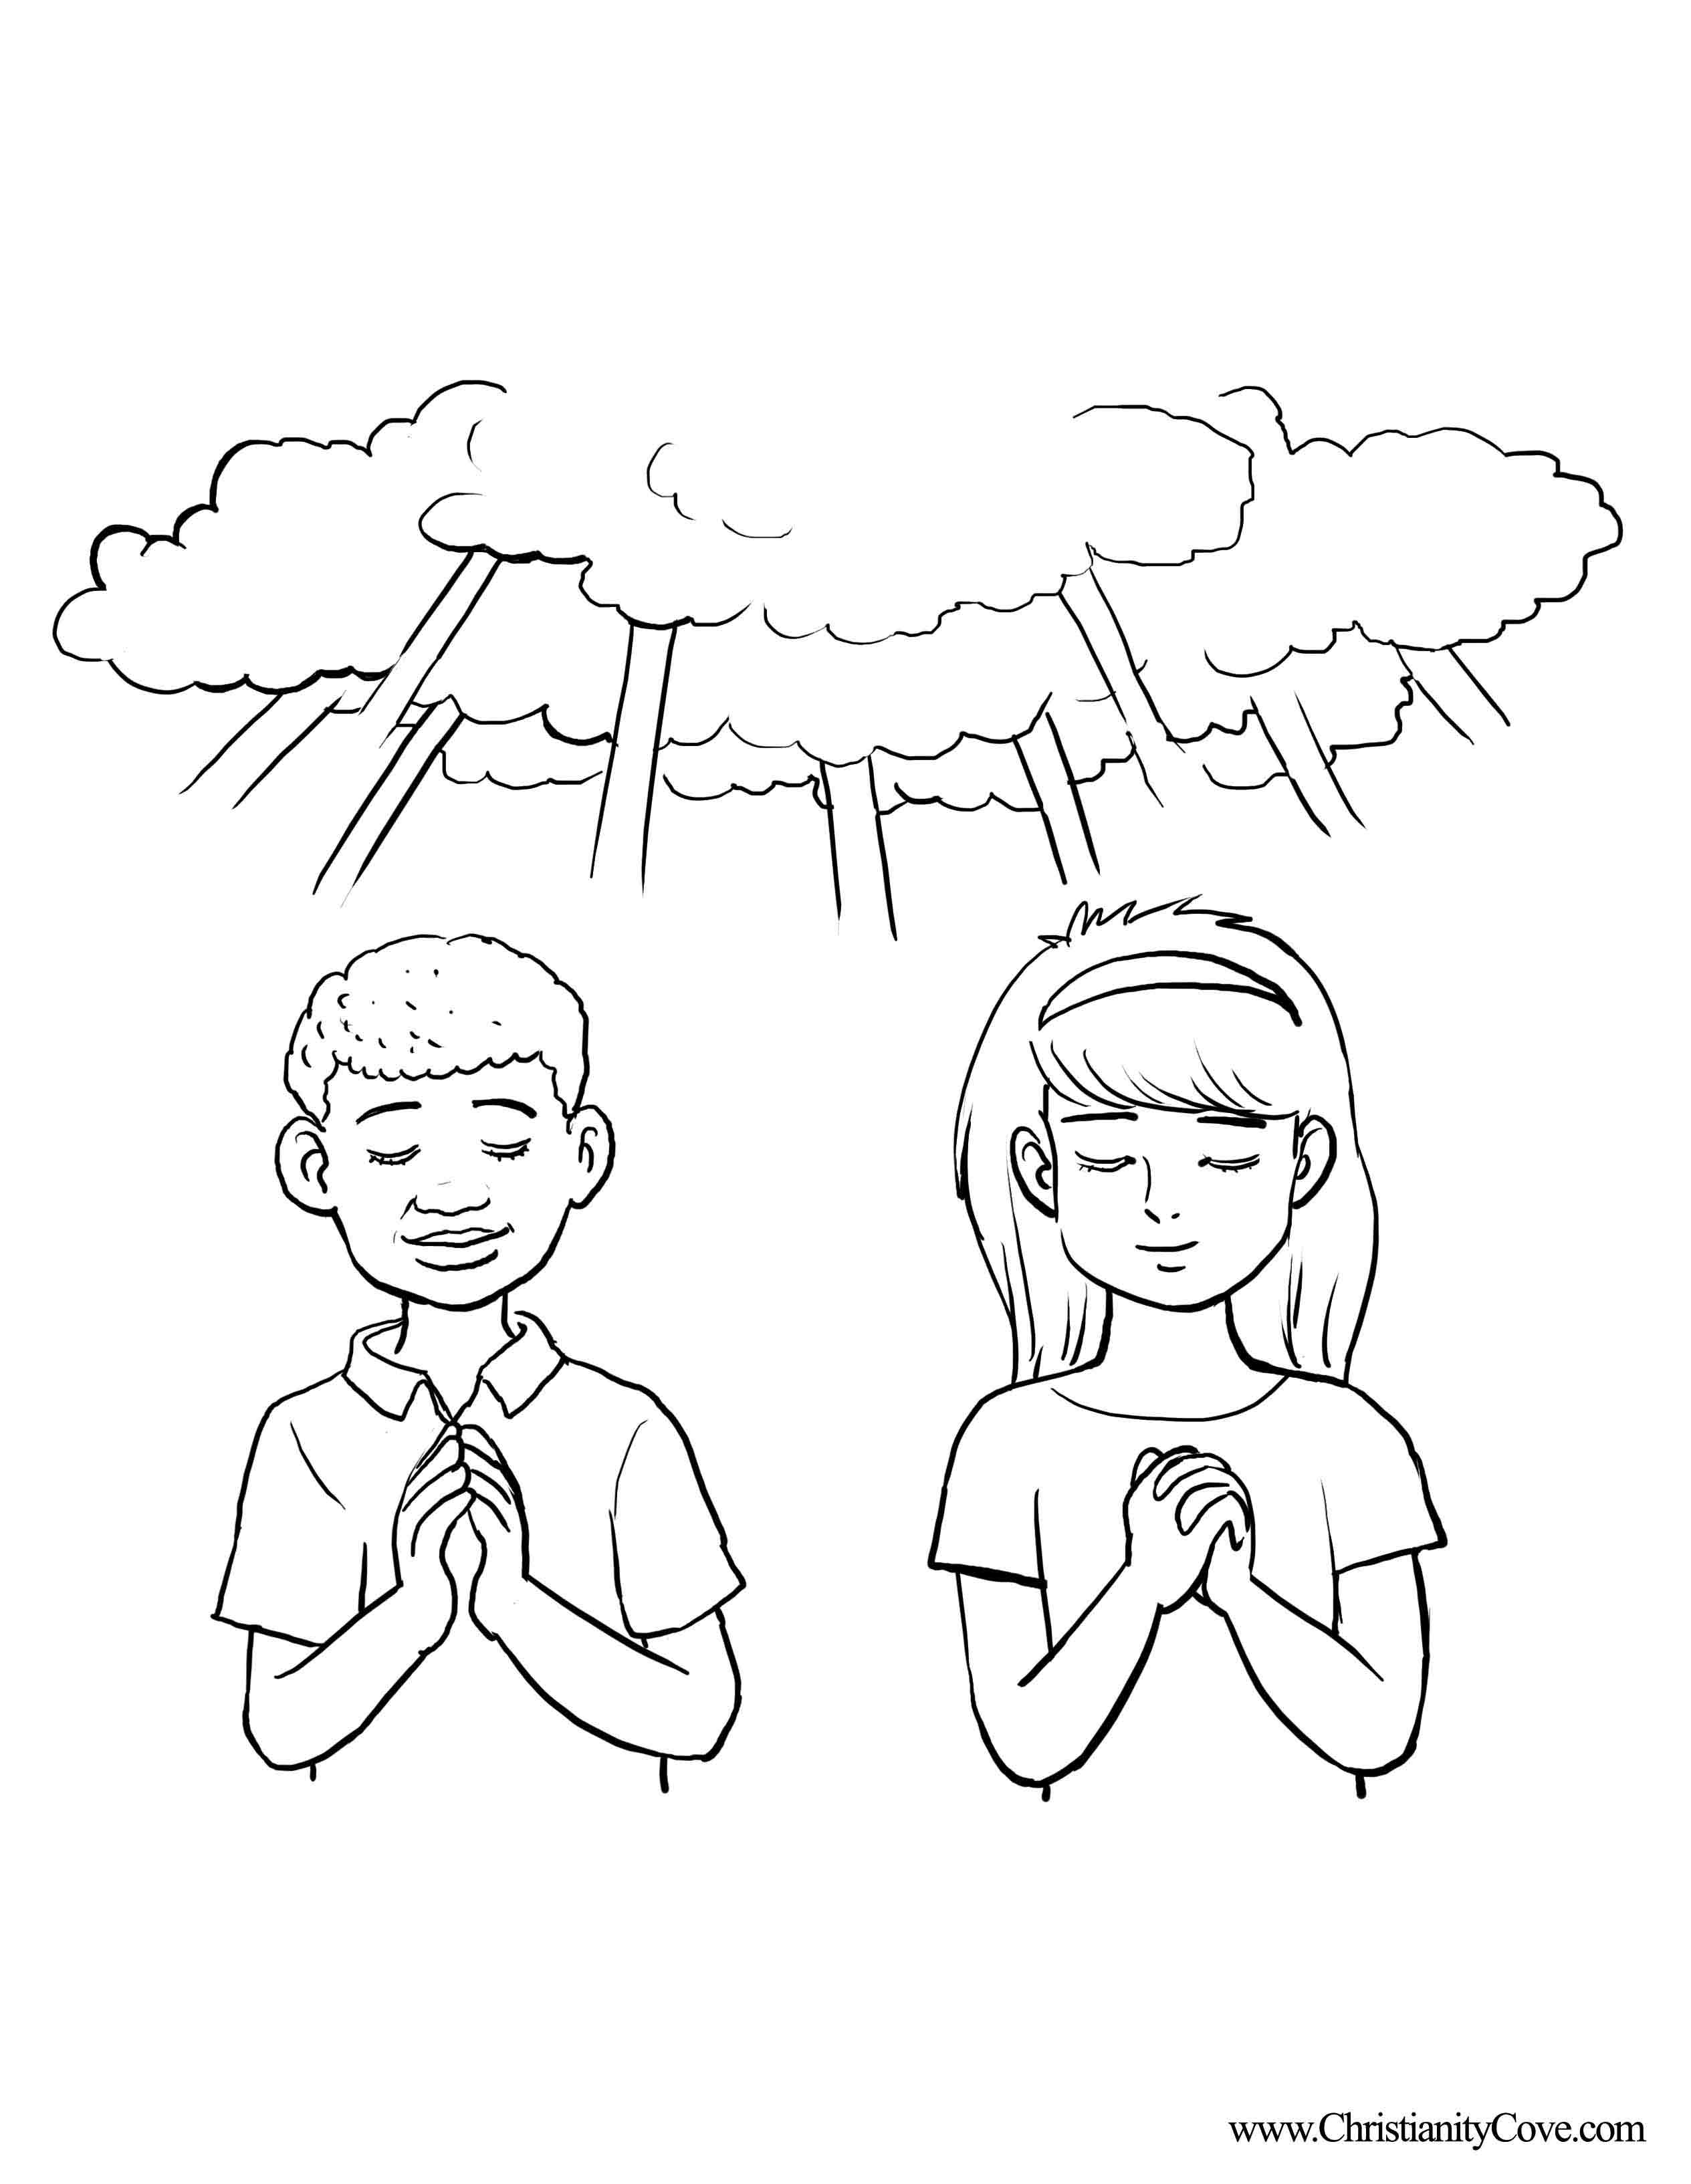 bible coloring pages prayer - photo#22